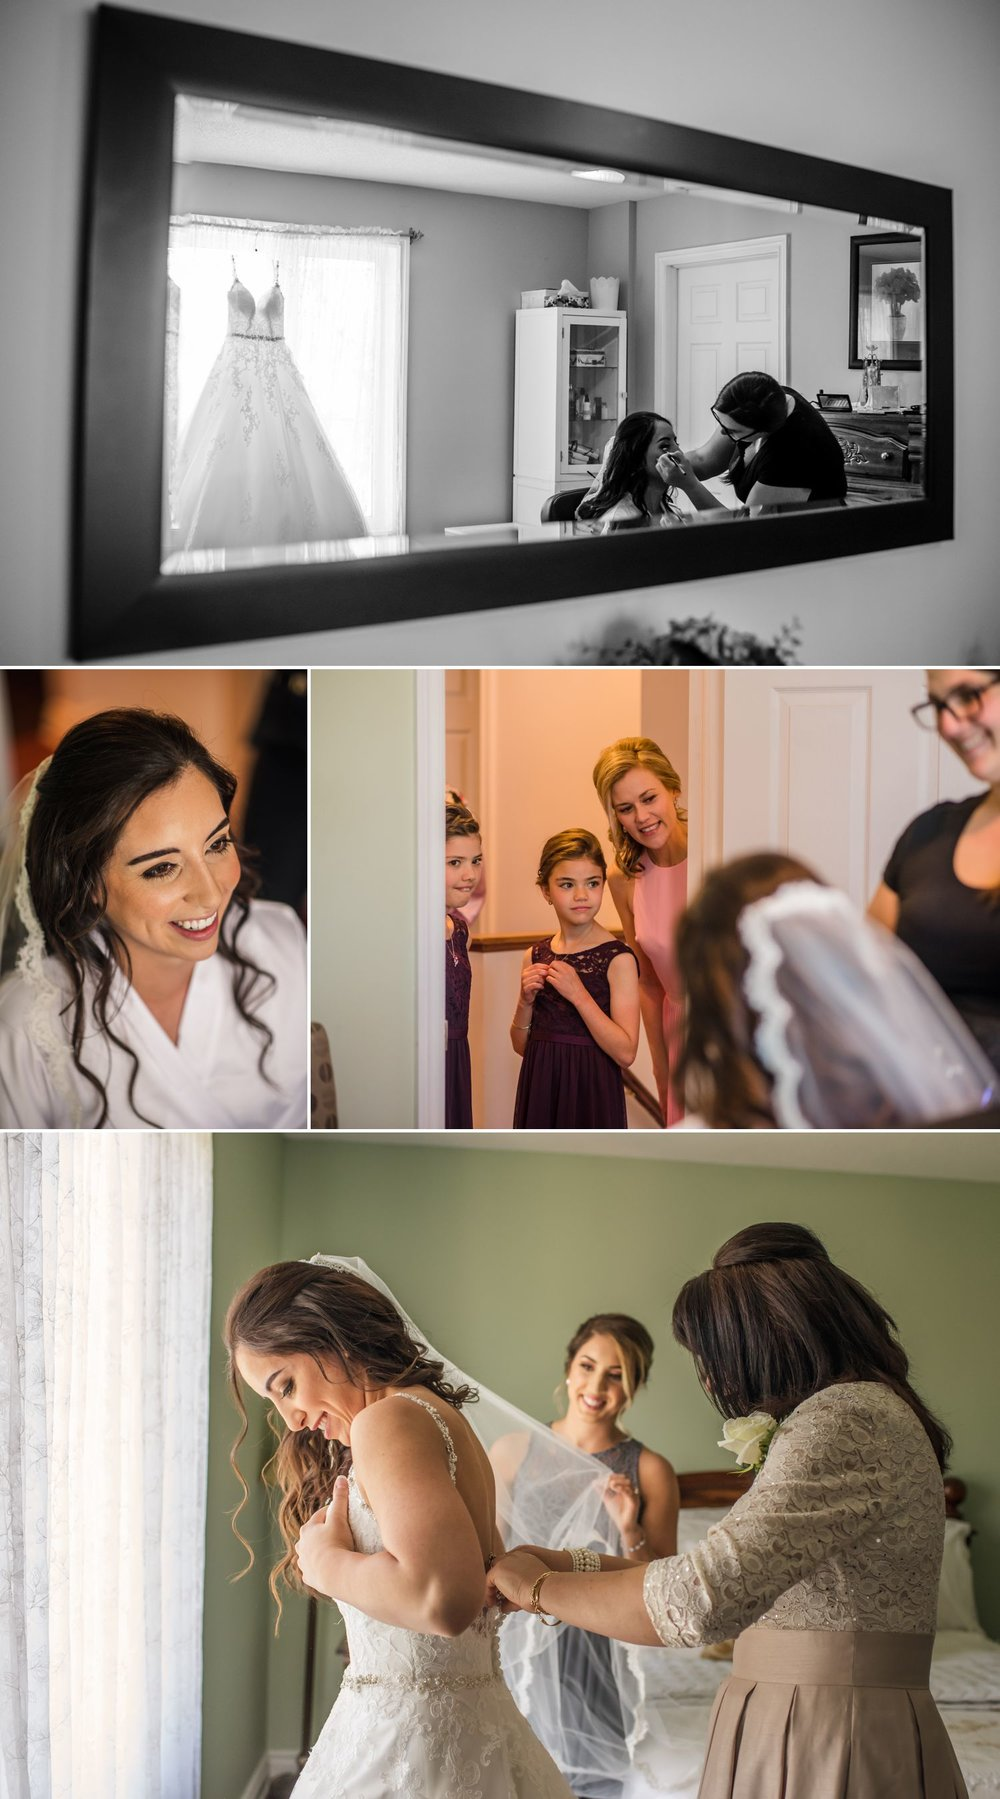 The bride with her bridesmaid, friends and family getting ready at her family home in Ottawa